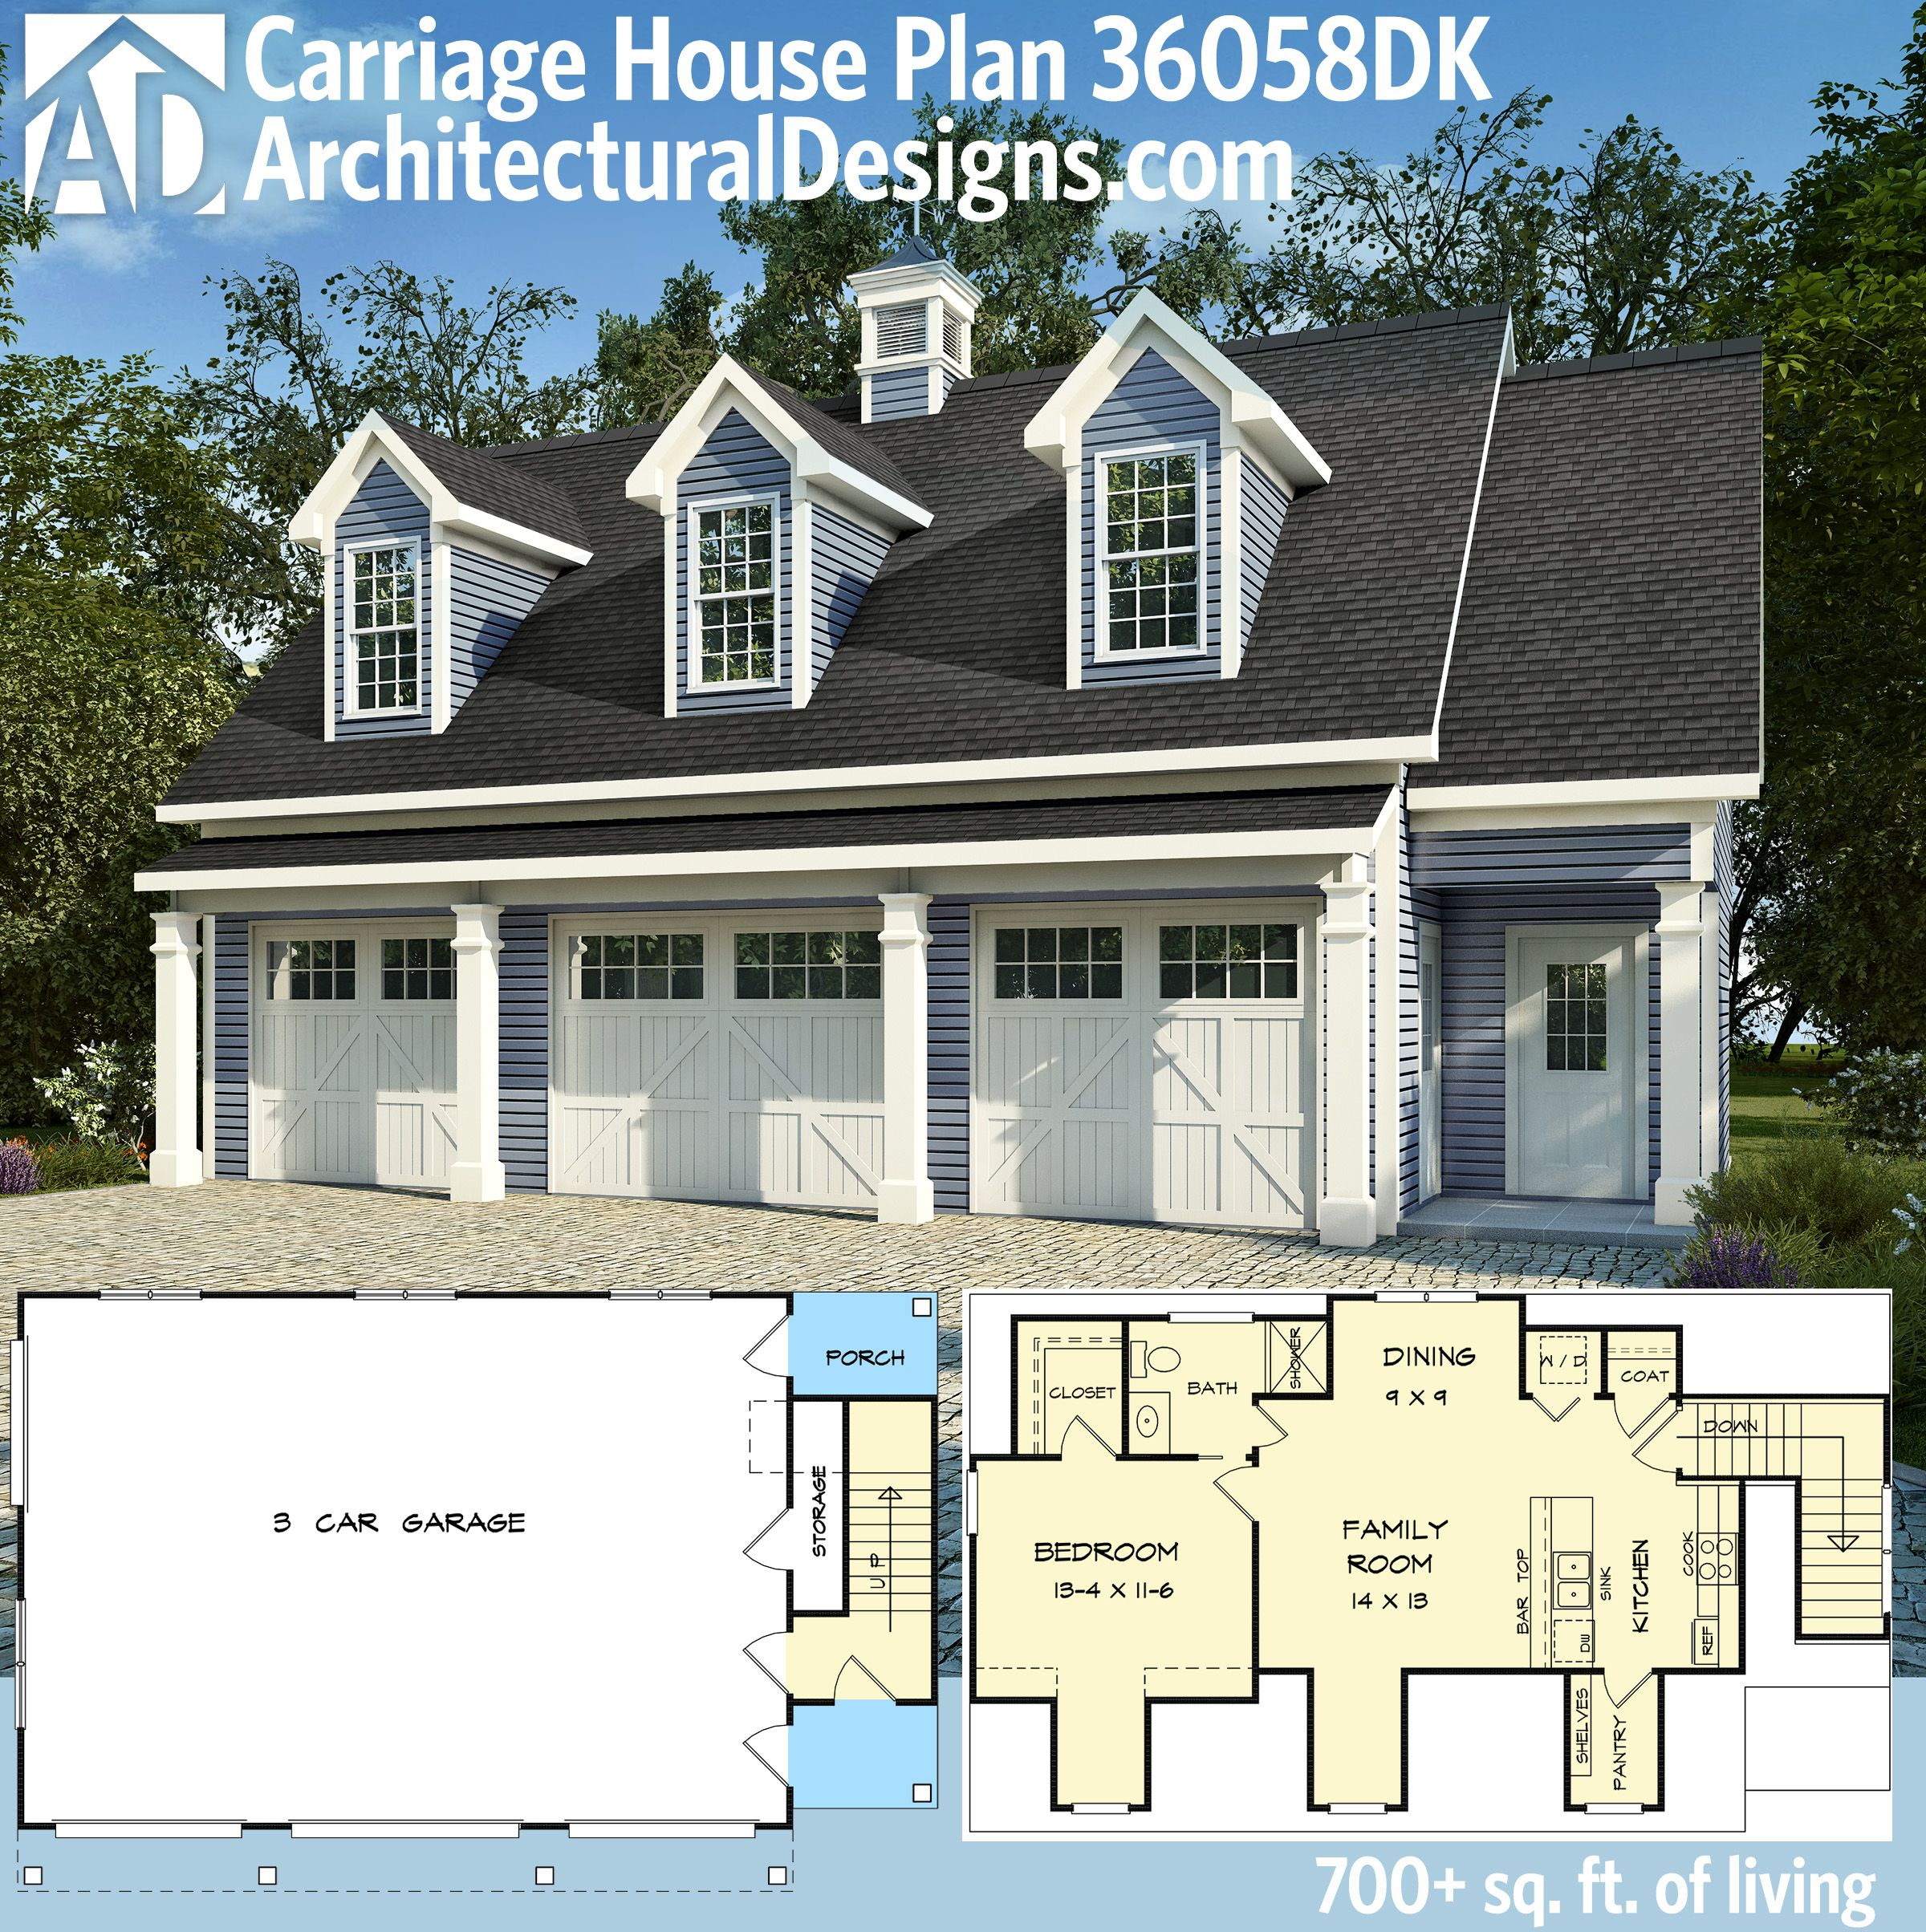 Plan 36058dk 3 car carriage house plan with 3 dormers for Plans for 3 car garage with apartment above